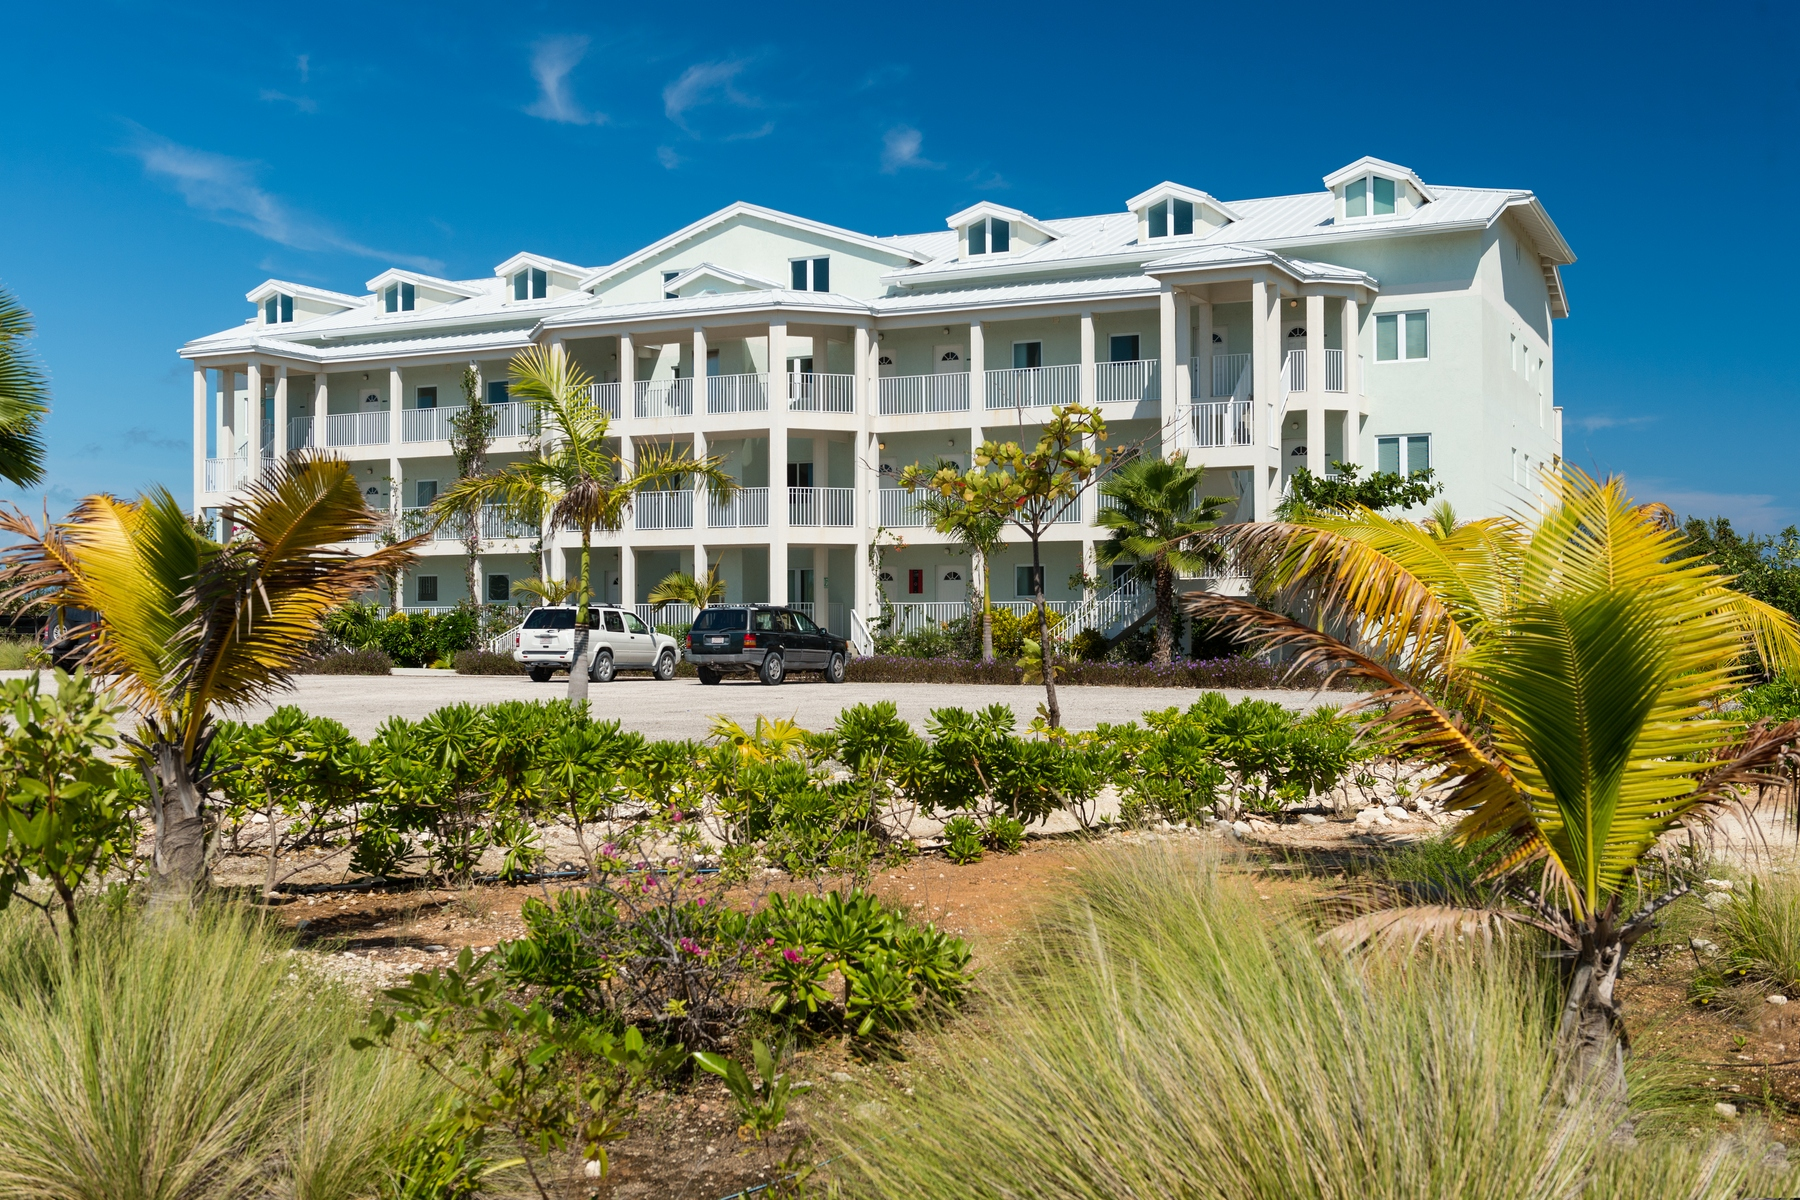 Other Residential for Sale at Carib Club Condominiums Golf Course View Long Bay, Providenciales, TC Turks And Caicos Islands